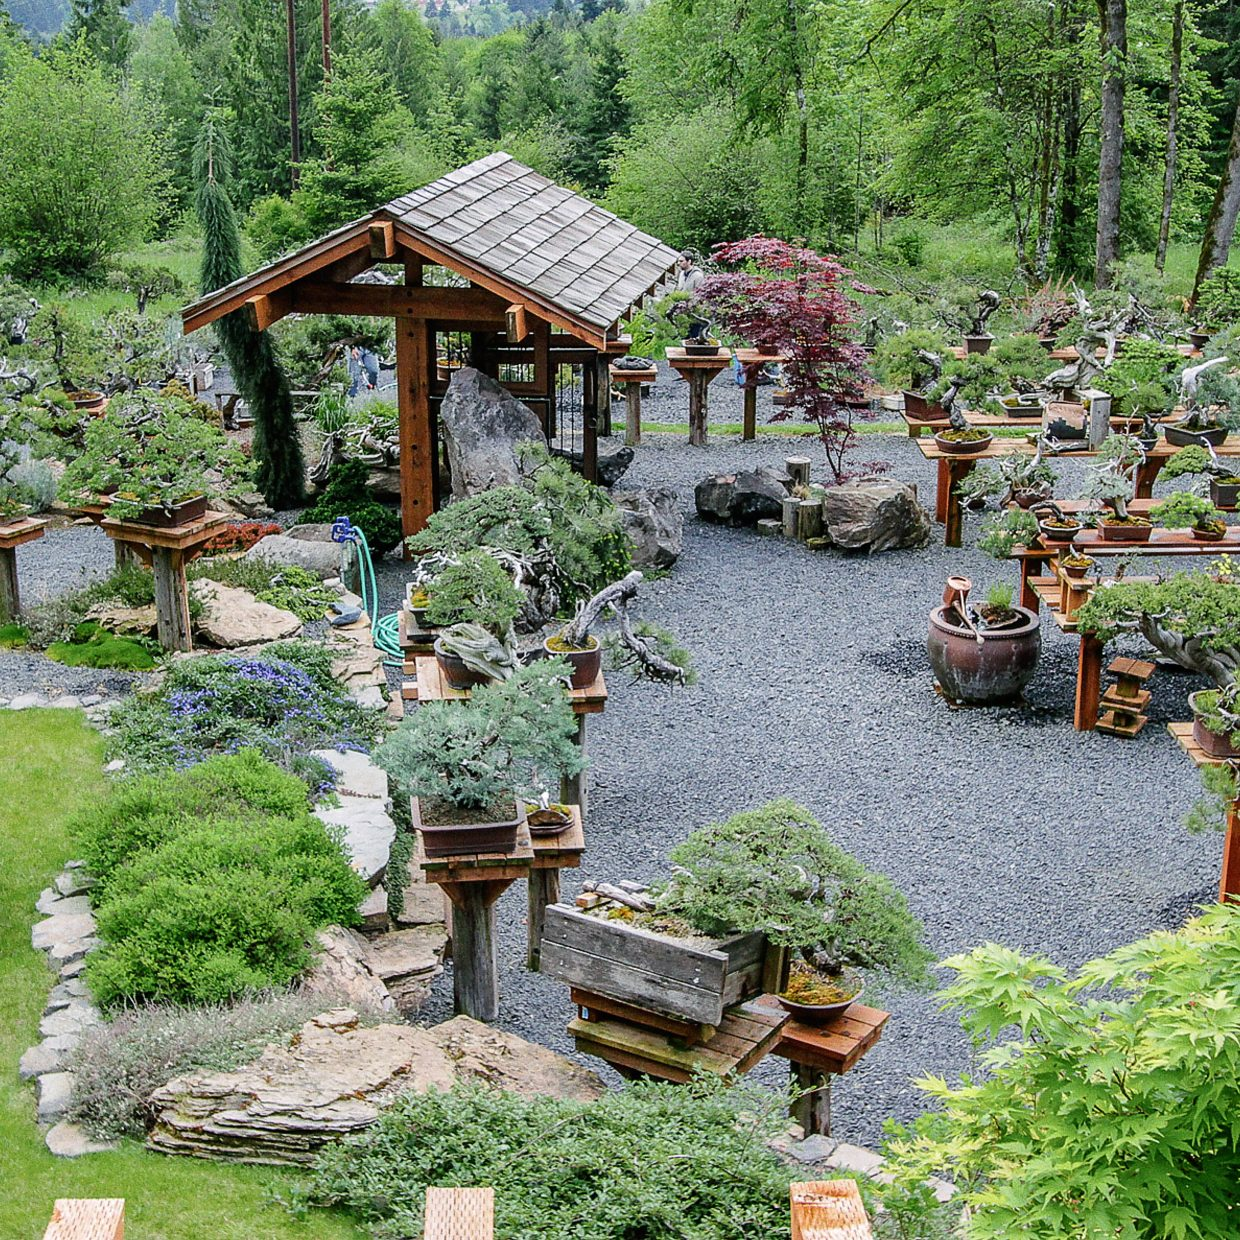 This is the Bonsai Mirai garden owned by Ryan and Chelsea Neil, Glenwood Springs High graduates who have become leaders in the American bonsai community.